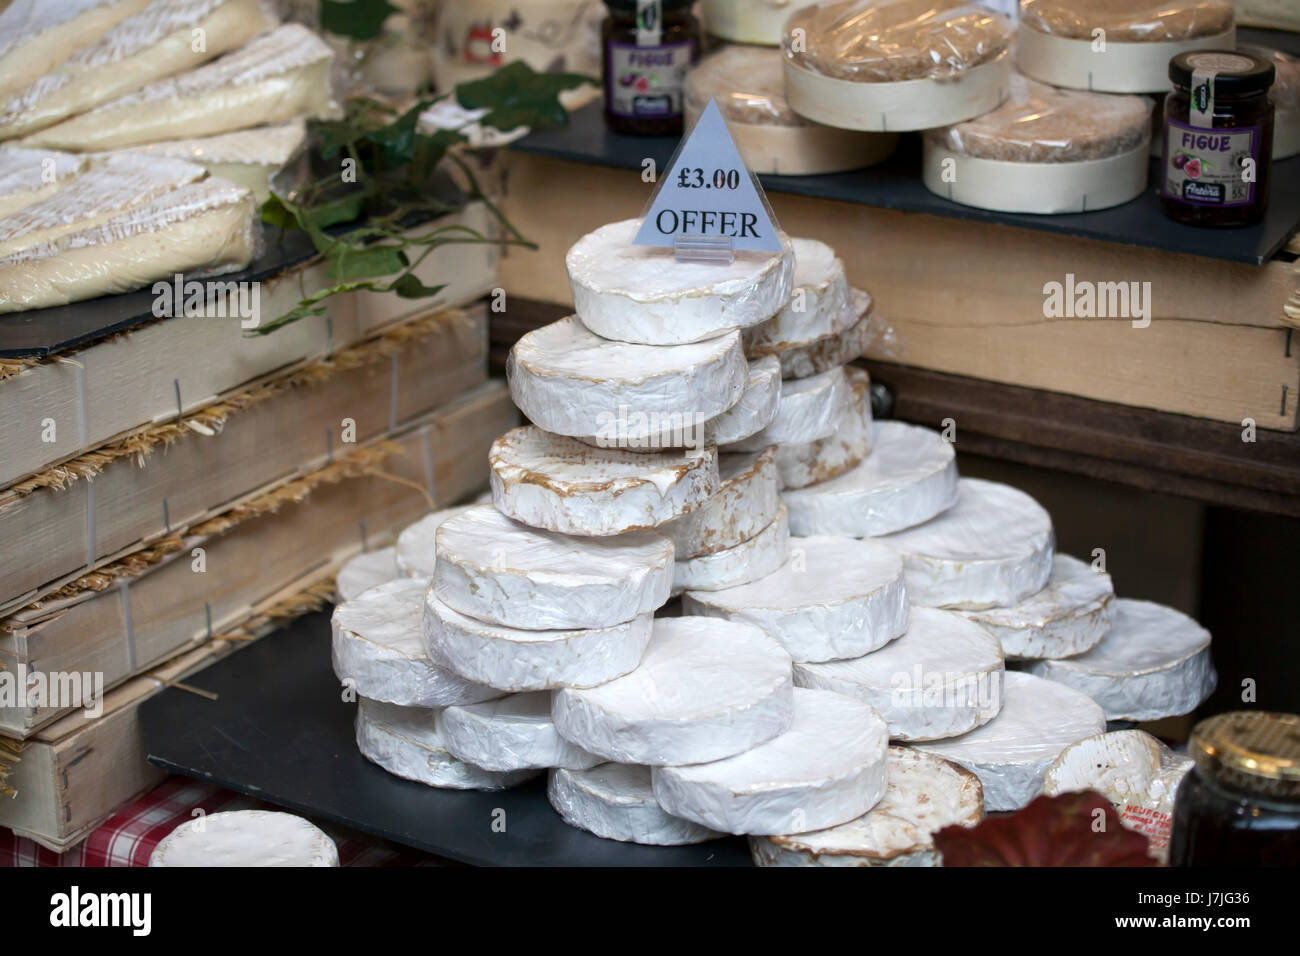 LONDON, UK - APRIL 22, 2017: Normandy Camembert and Couer de Neufchatel cheeses for sale - Stock Image